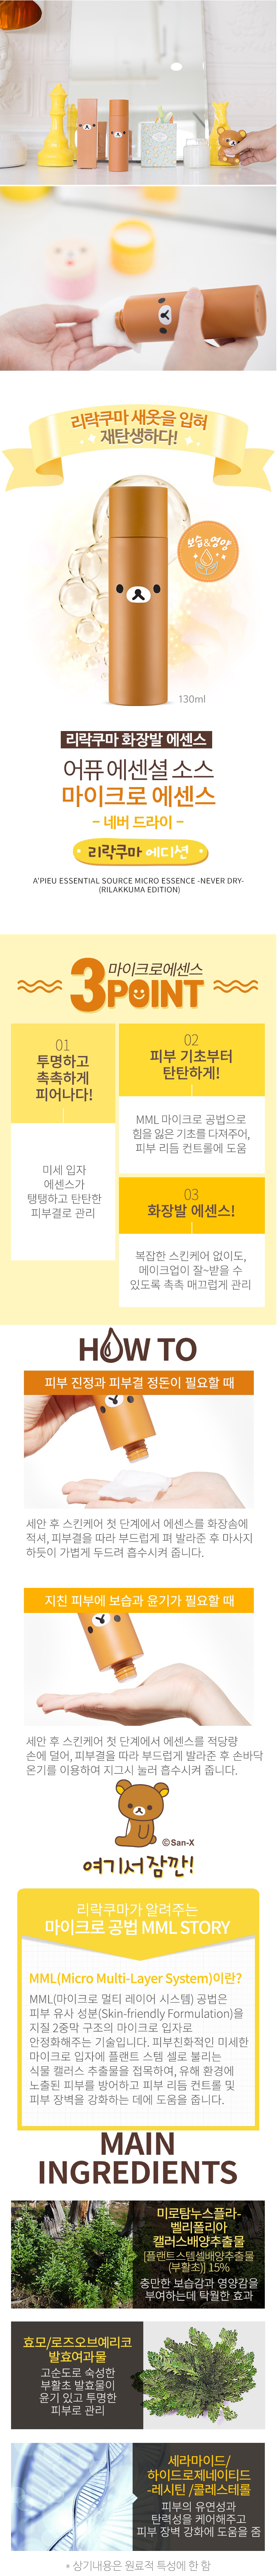 a-pieu-rilakkuma-essential-source-micro-essence-never-dry-130ml-1.jpg